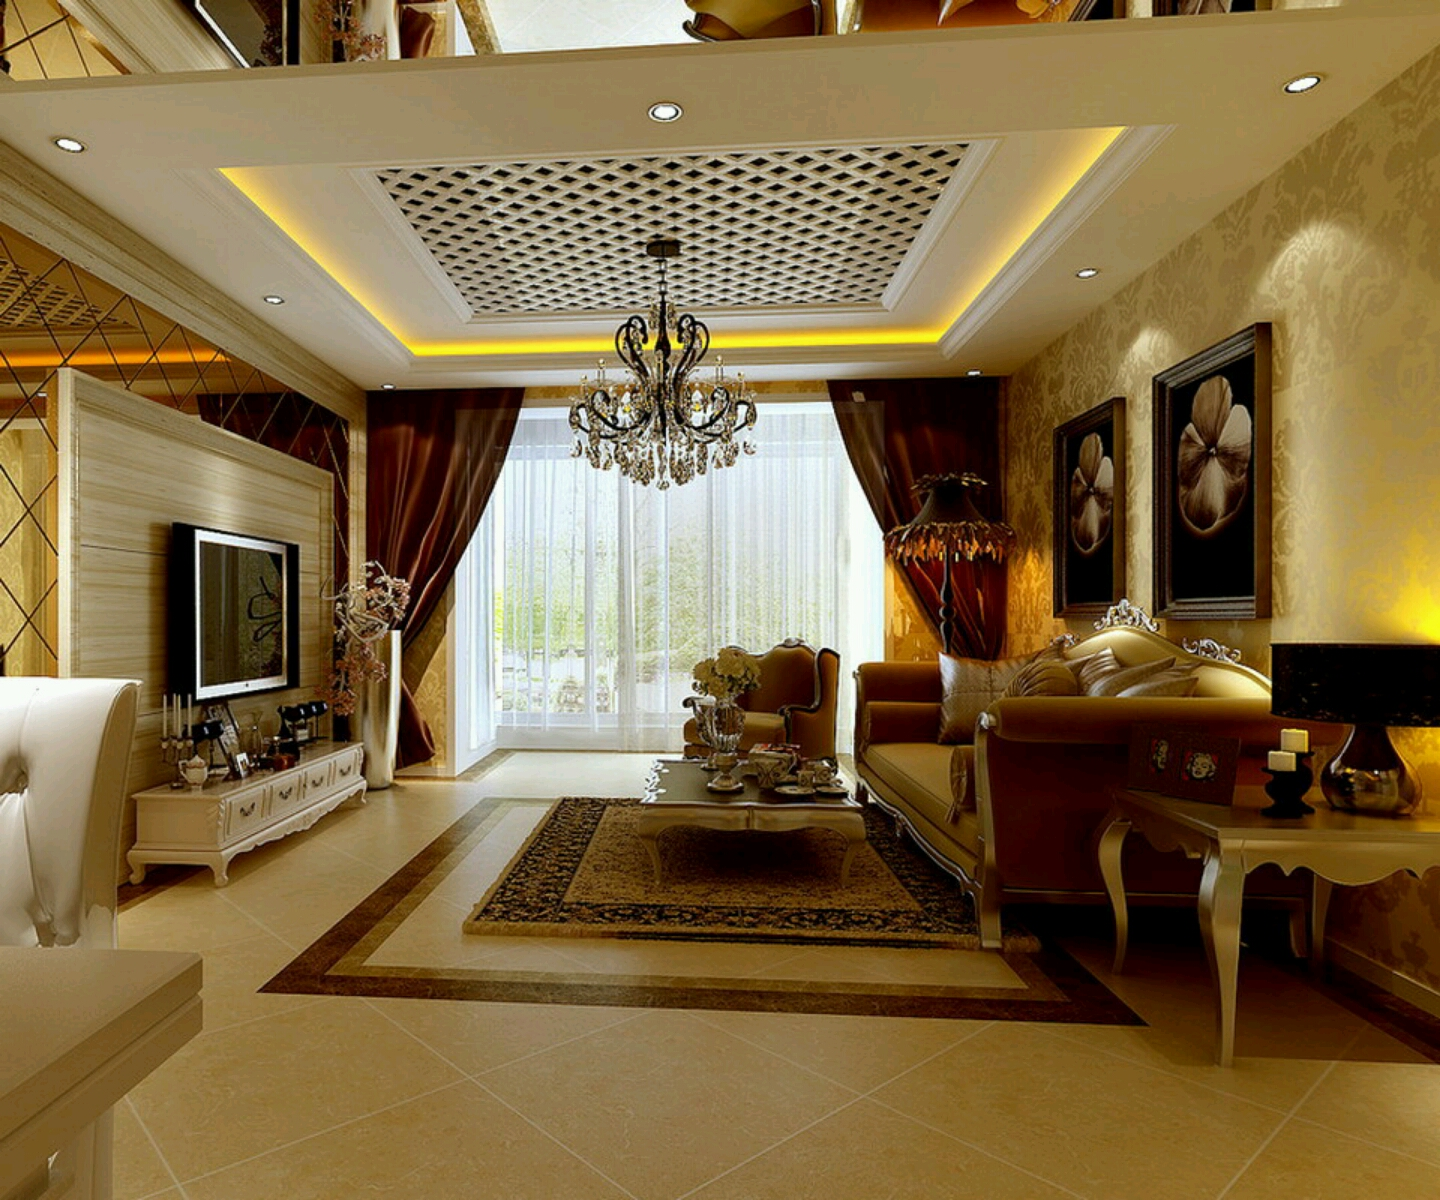 New home designs latest luxury homes interior decoration for Sitting room interior